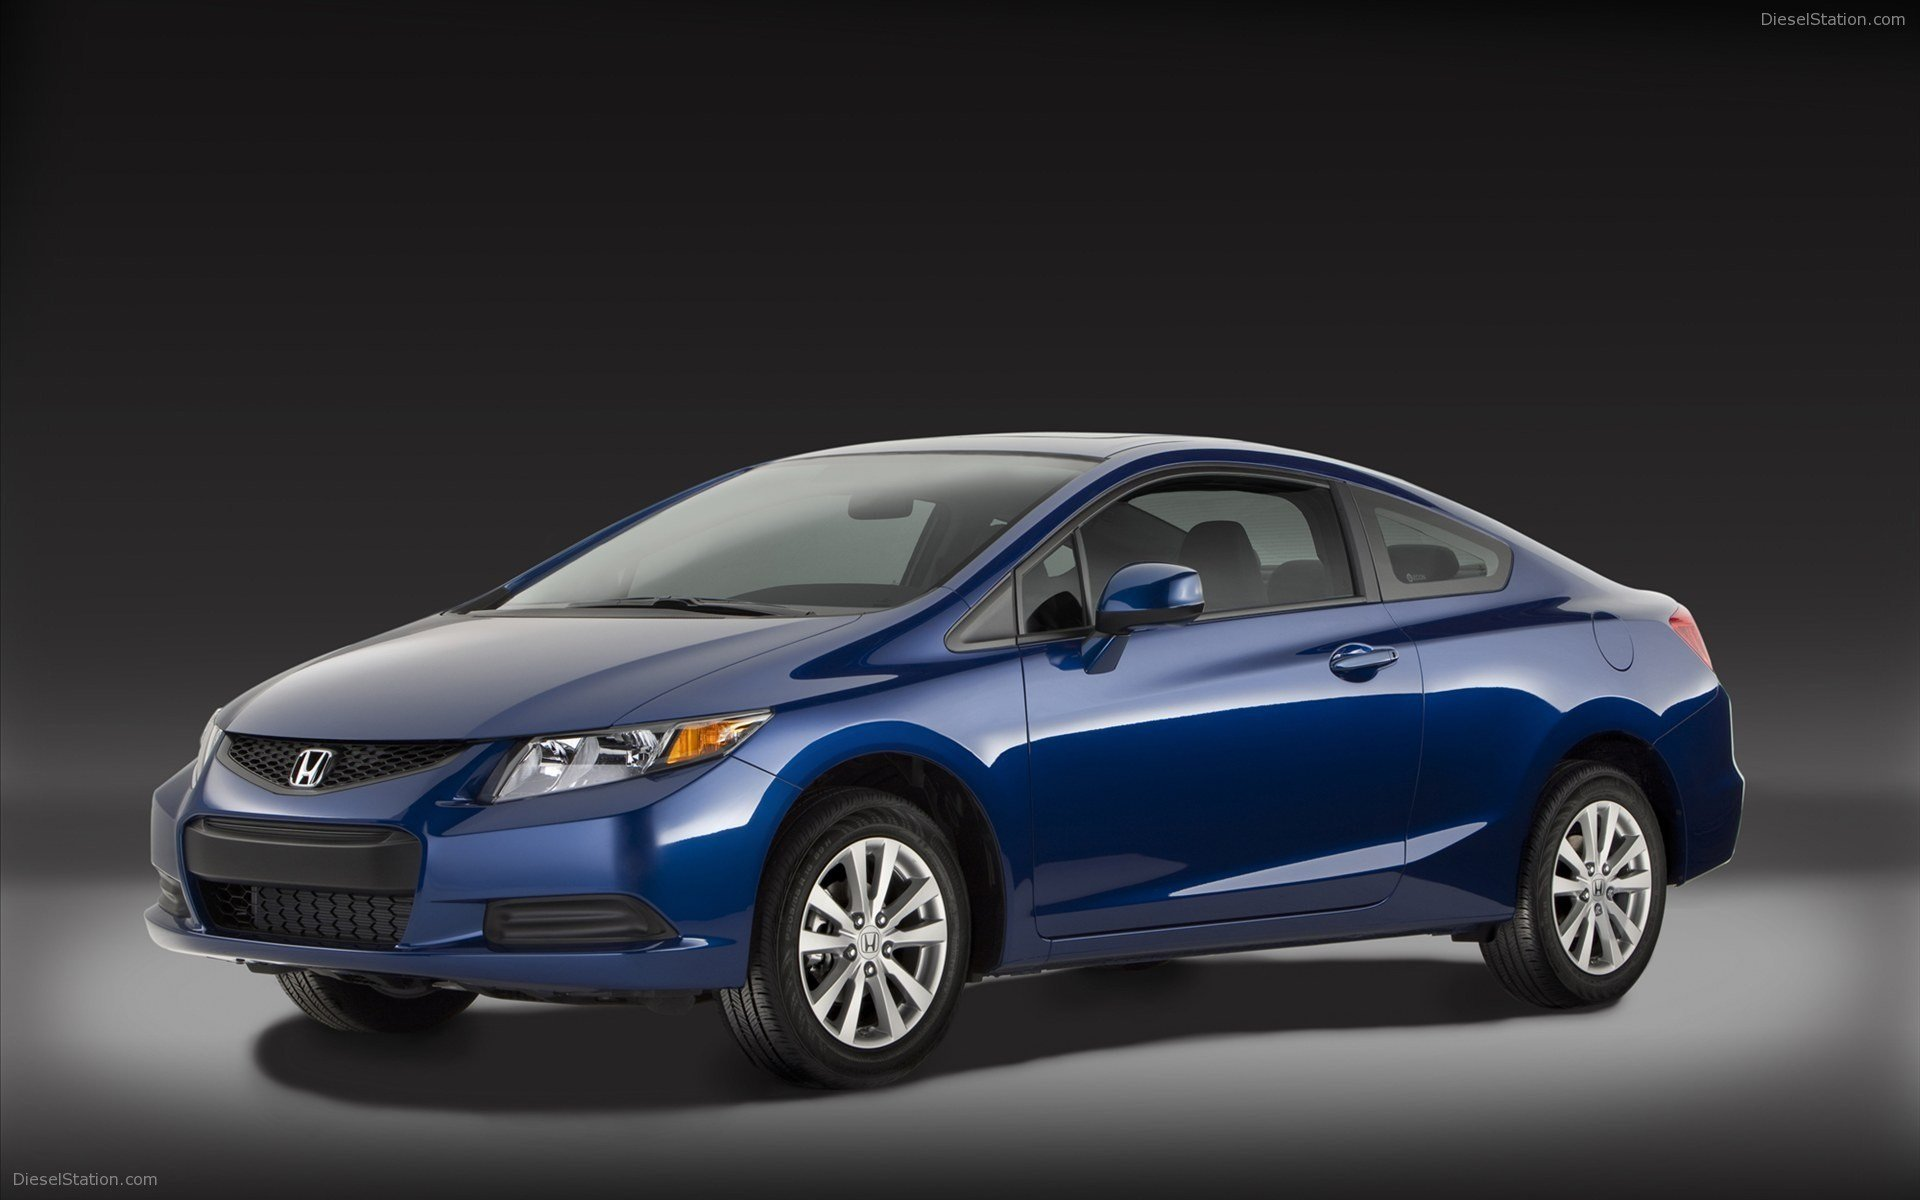 New Honda Civic 2012 Widescreen Exotic Car Photo 05 Of 18 On This Month